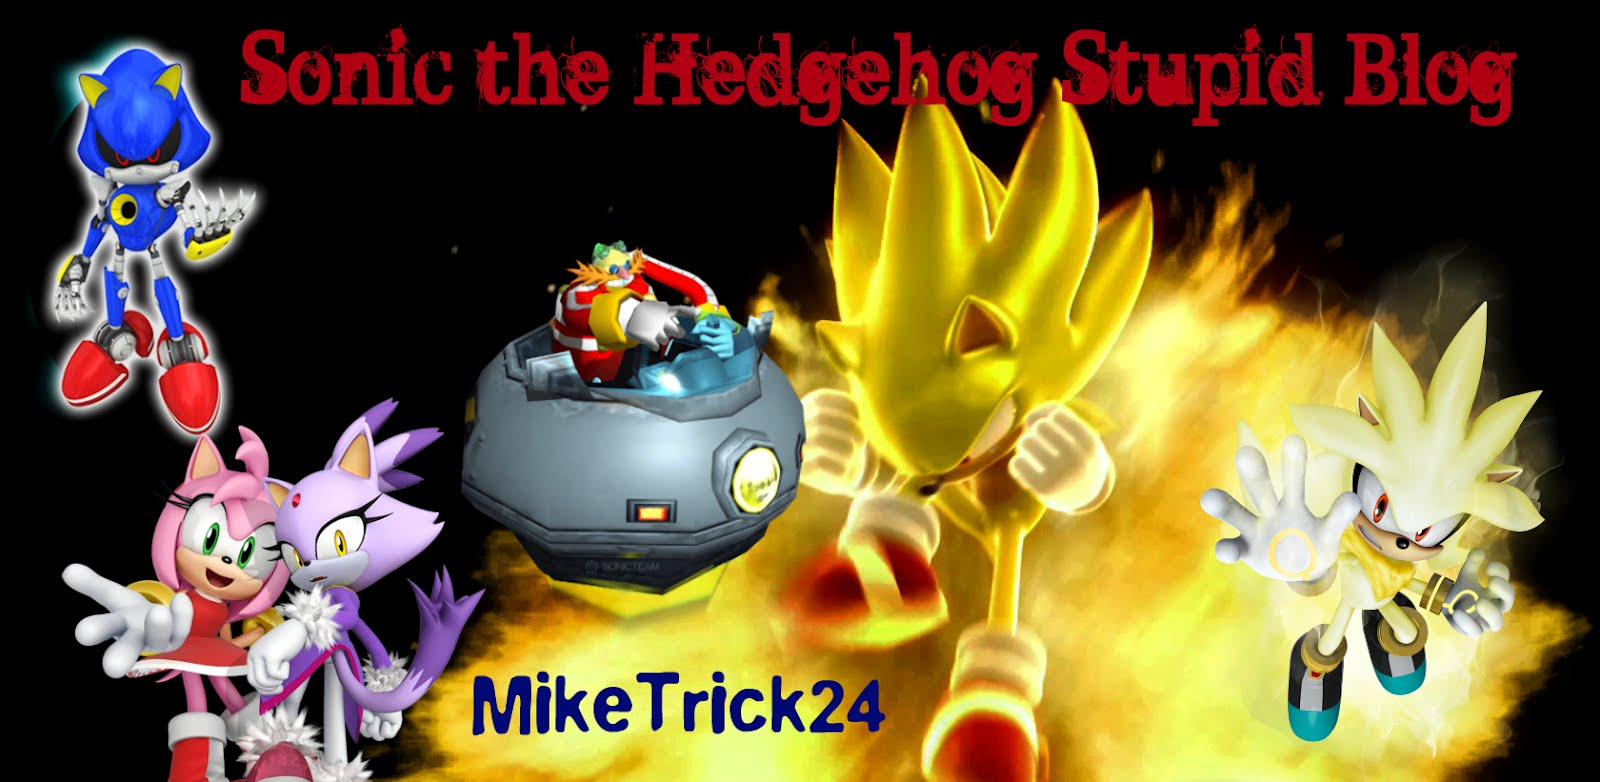 Sonic the Hedgehog Stupid Blog